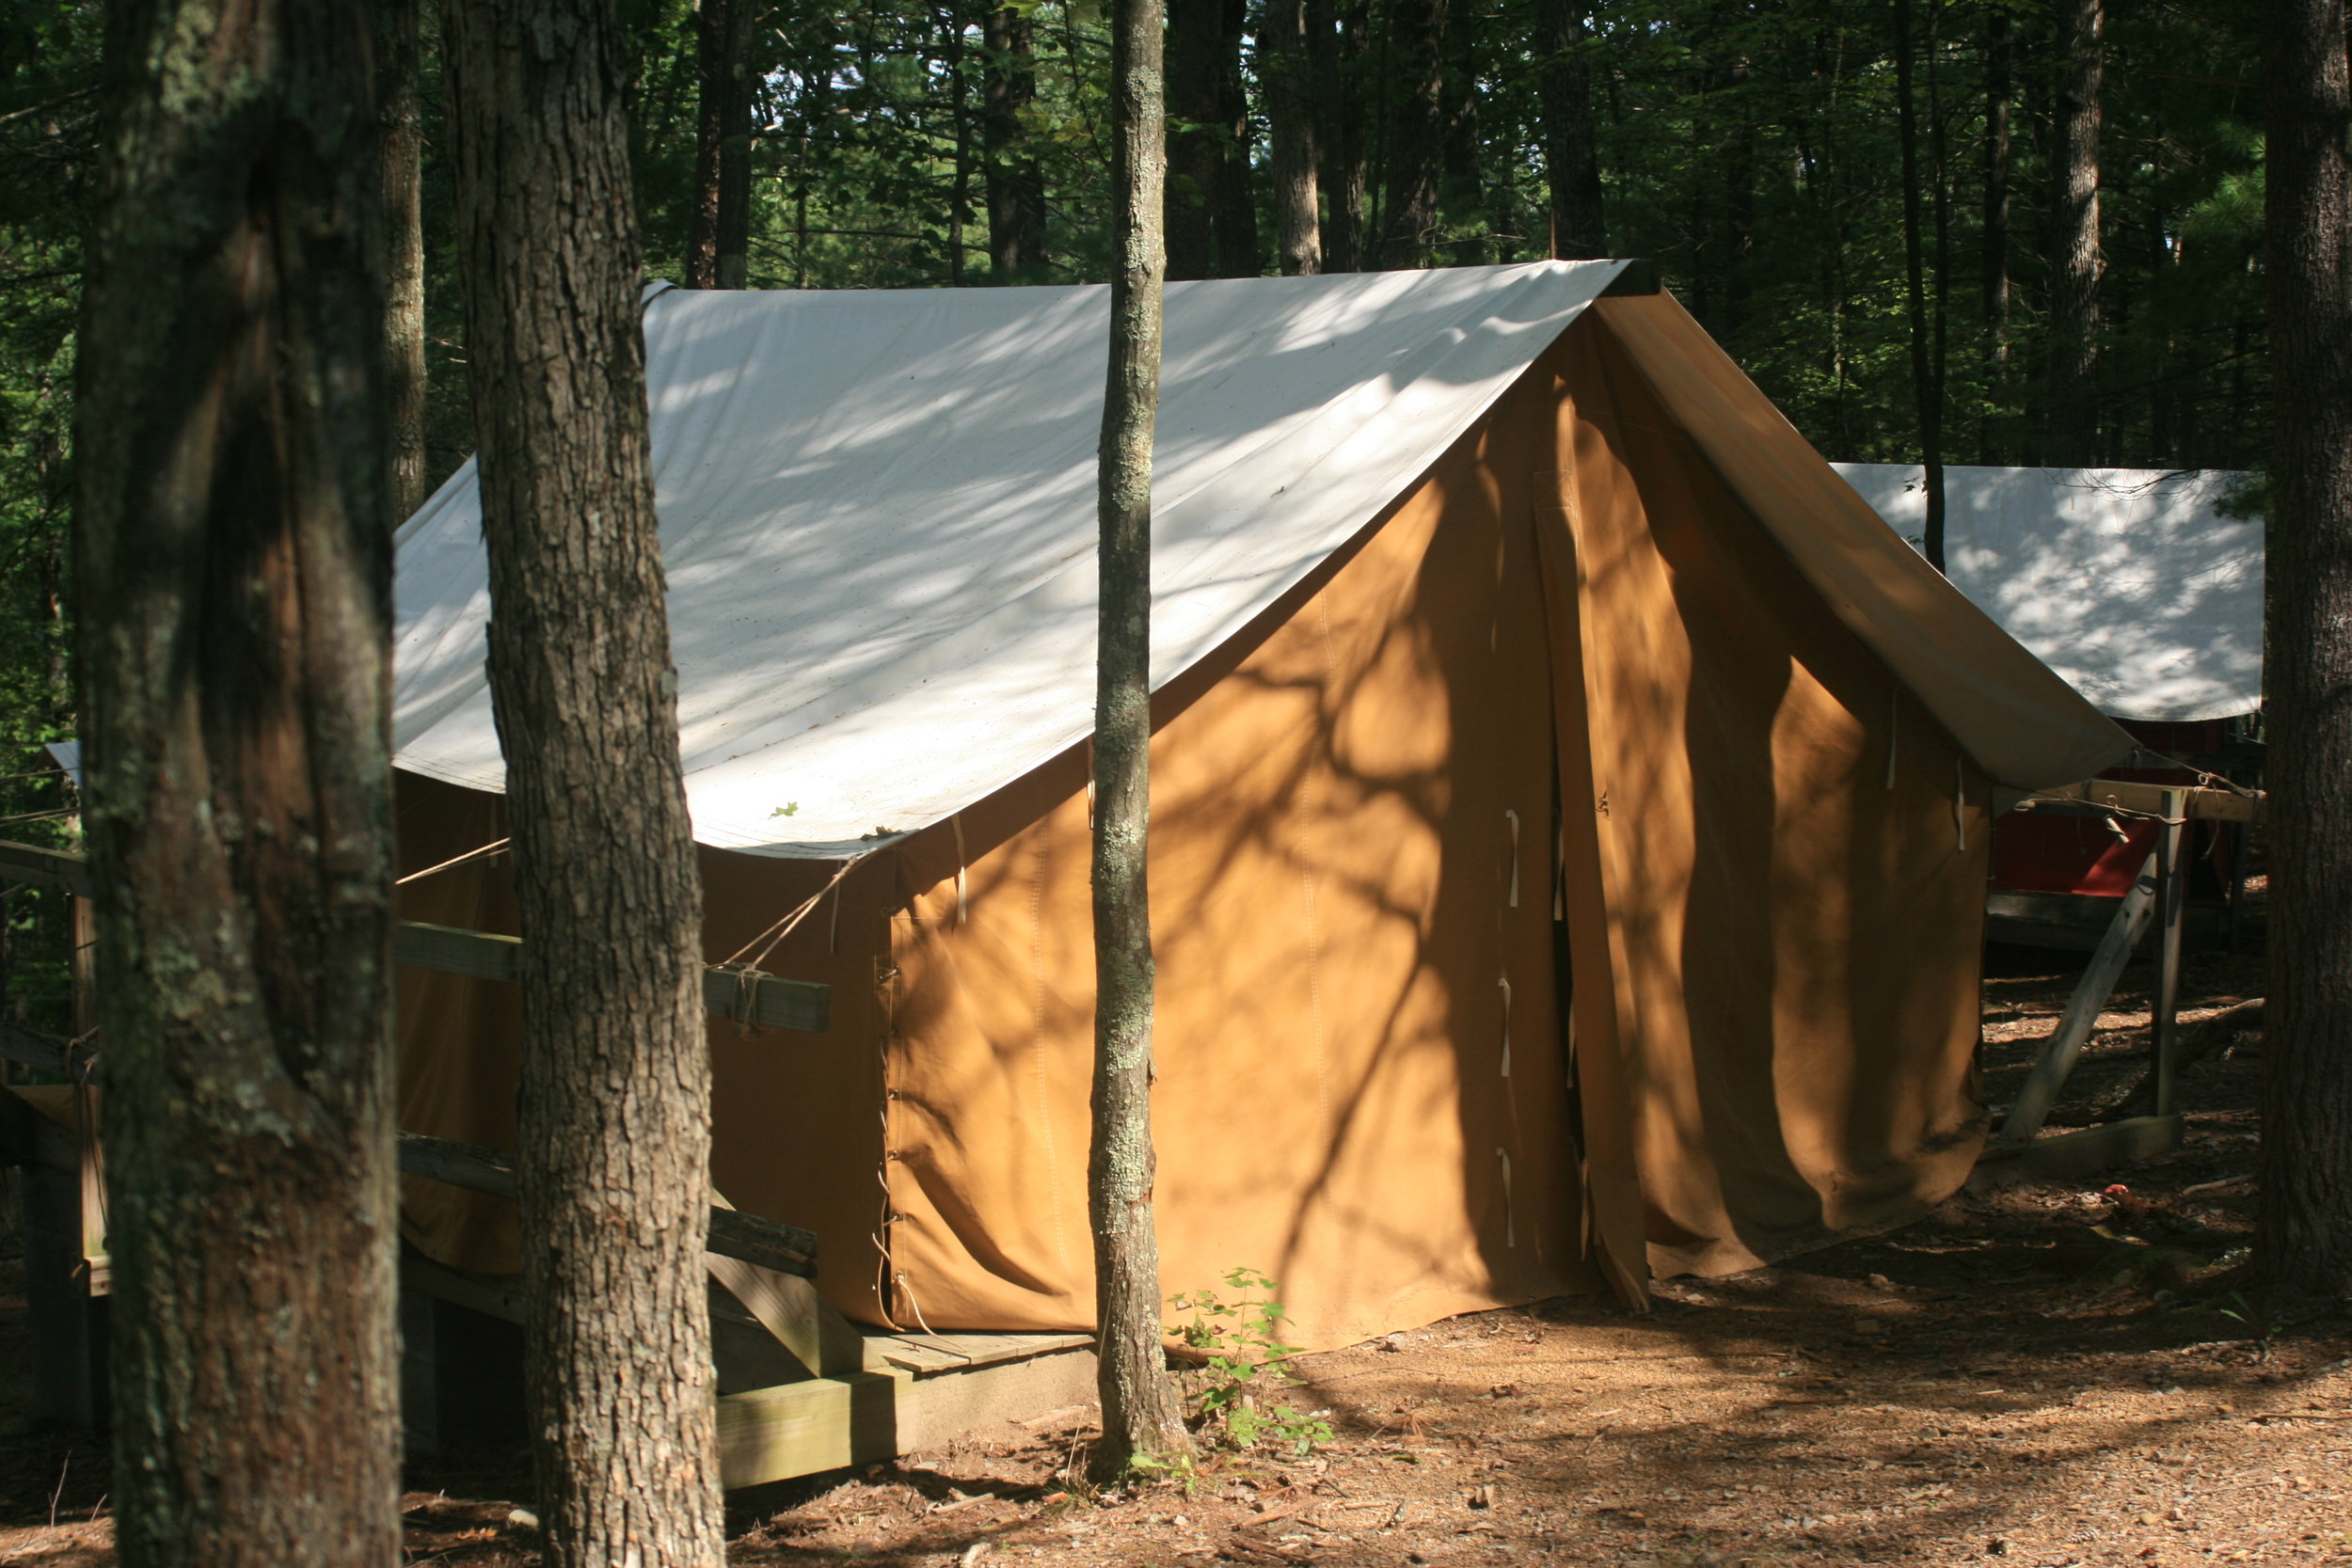 Some of your guests may prefer to sleep under canvas!